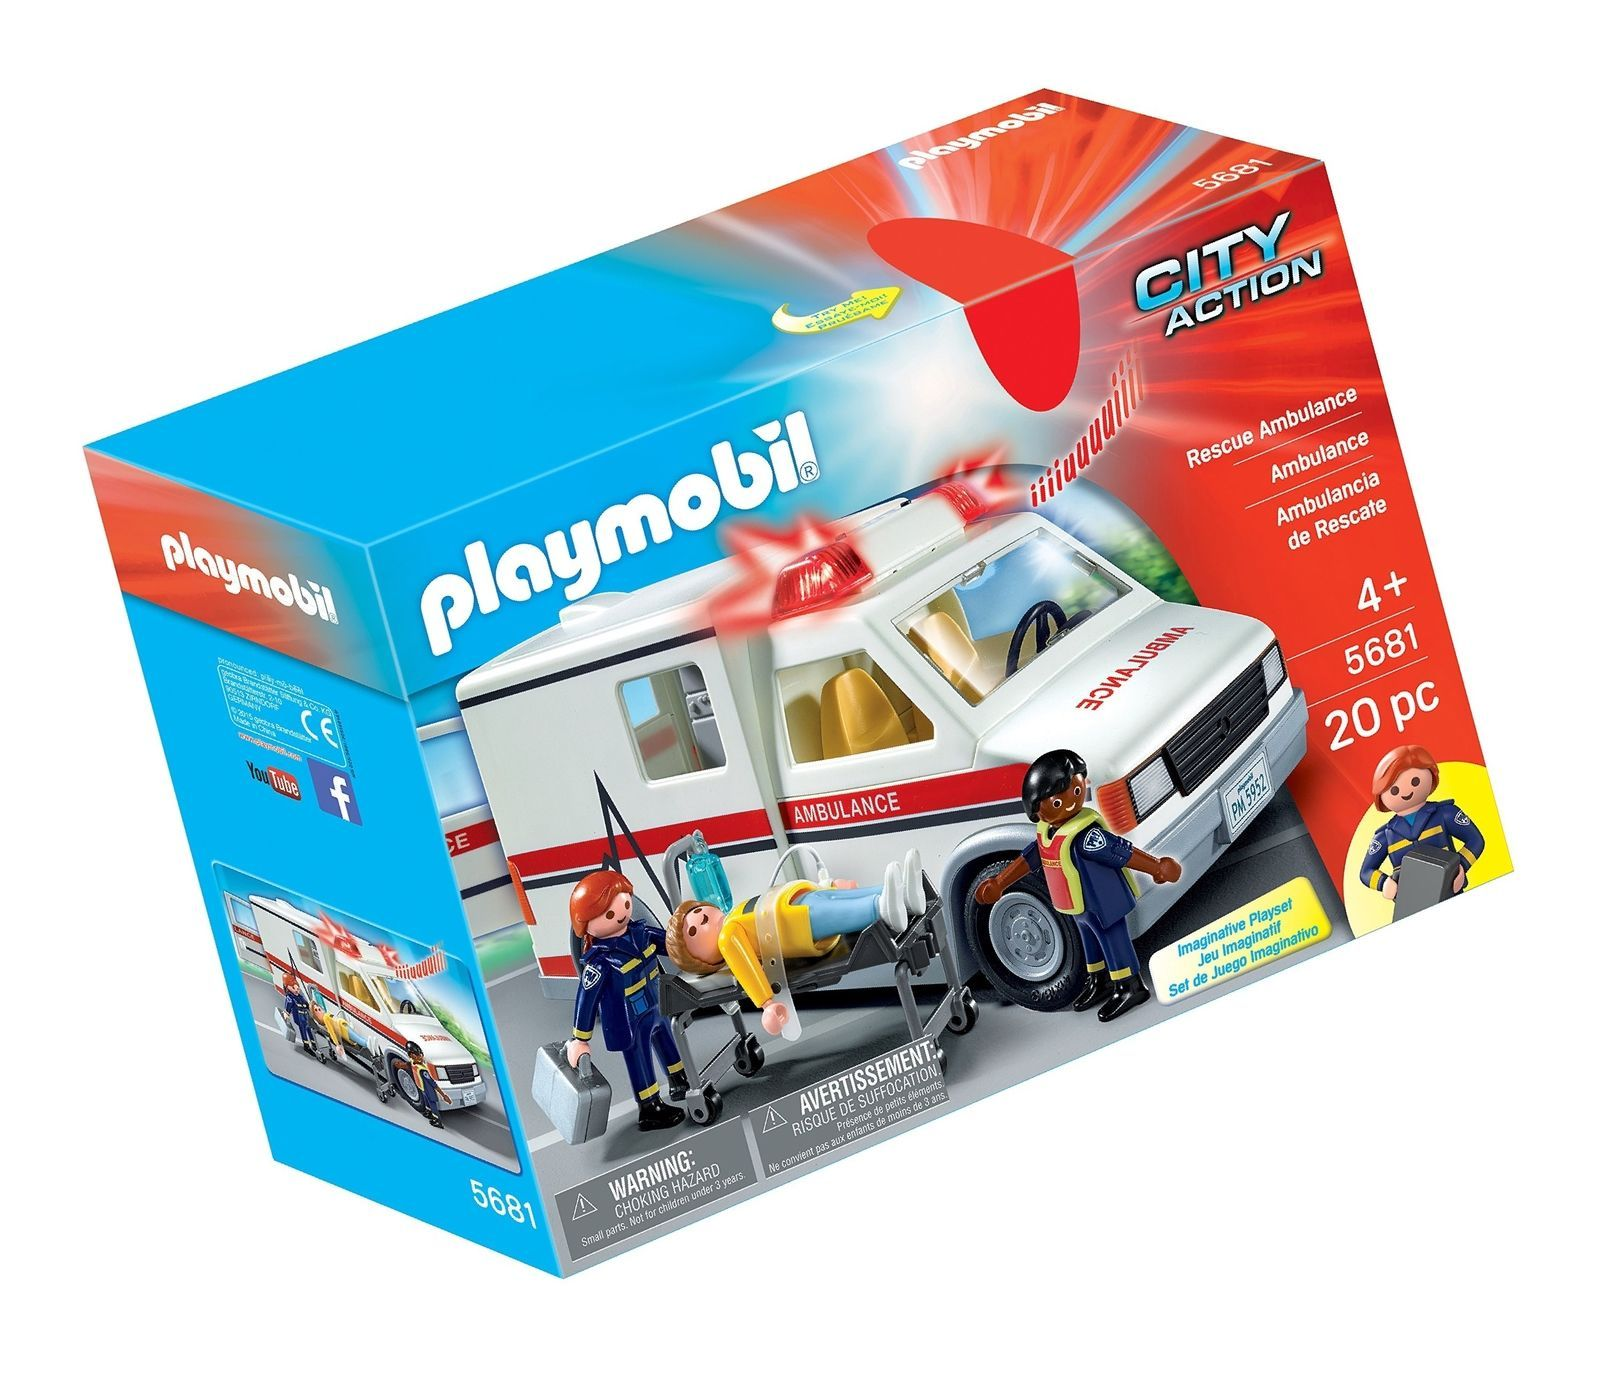 PLAYMOBIL Rescue Ambulance City Action [New] 5681